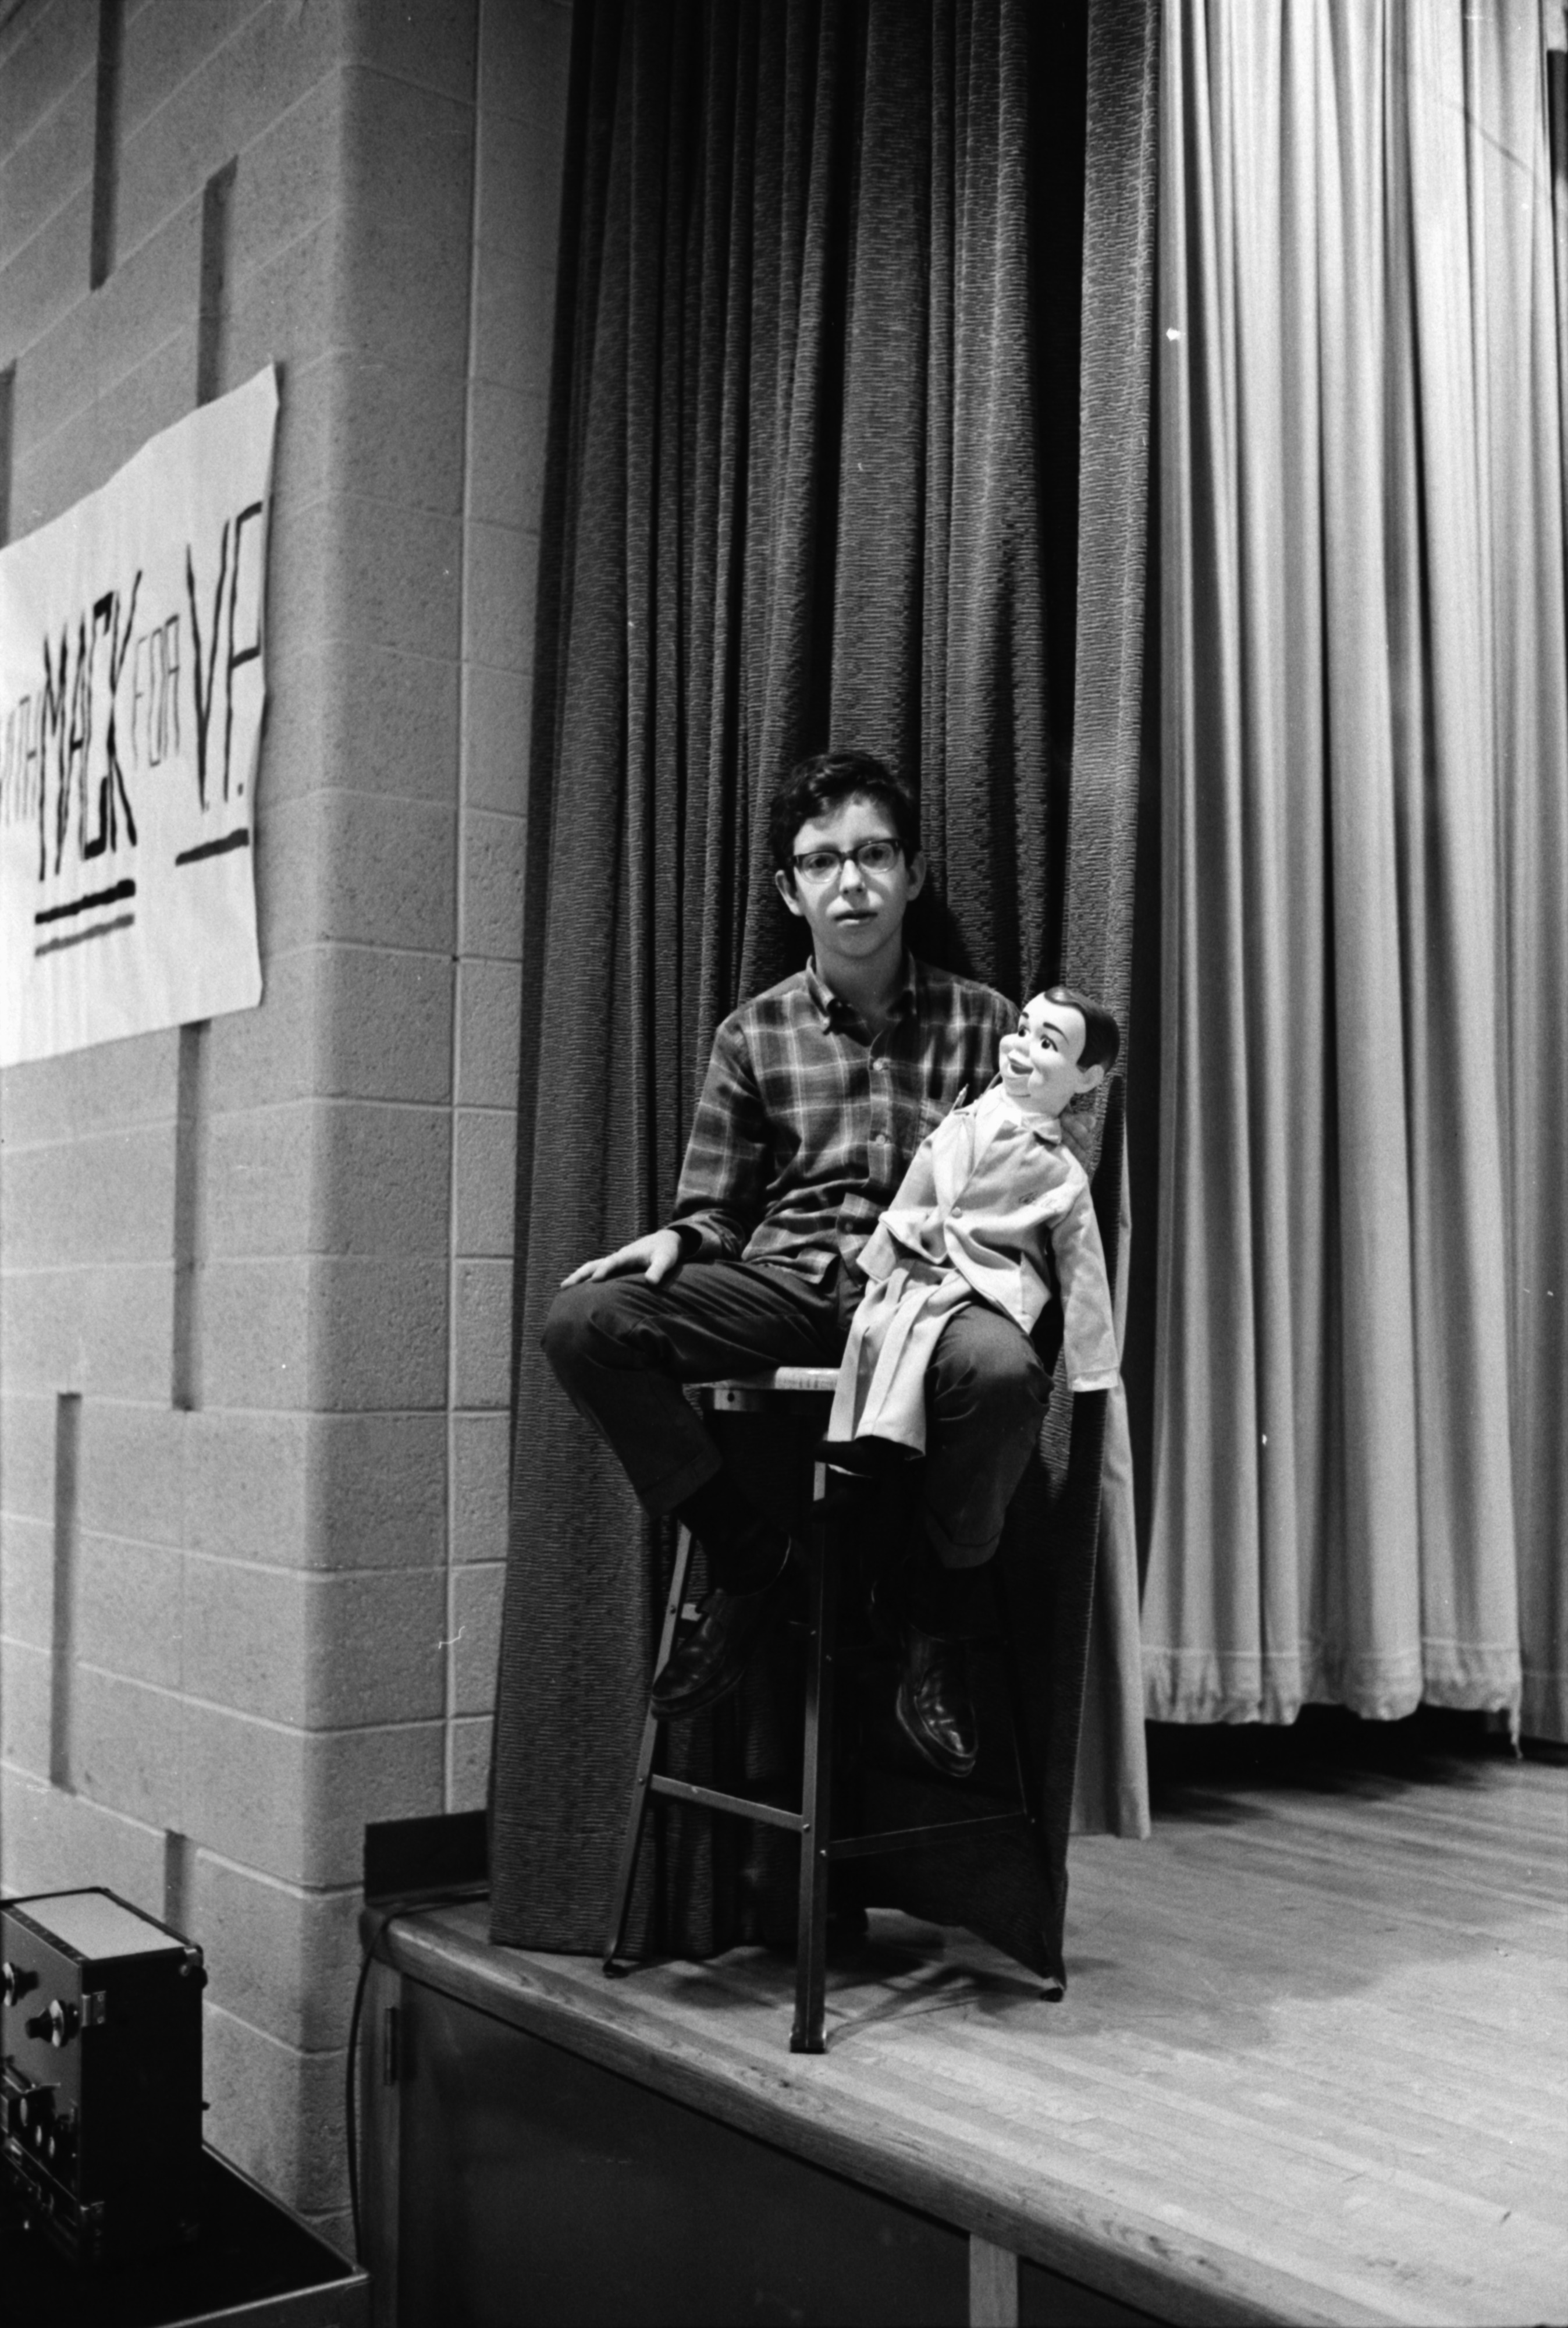 Ventriloquist at Forsythe Junior High School's Talent Show, January 1969 image